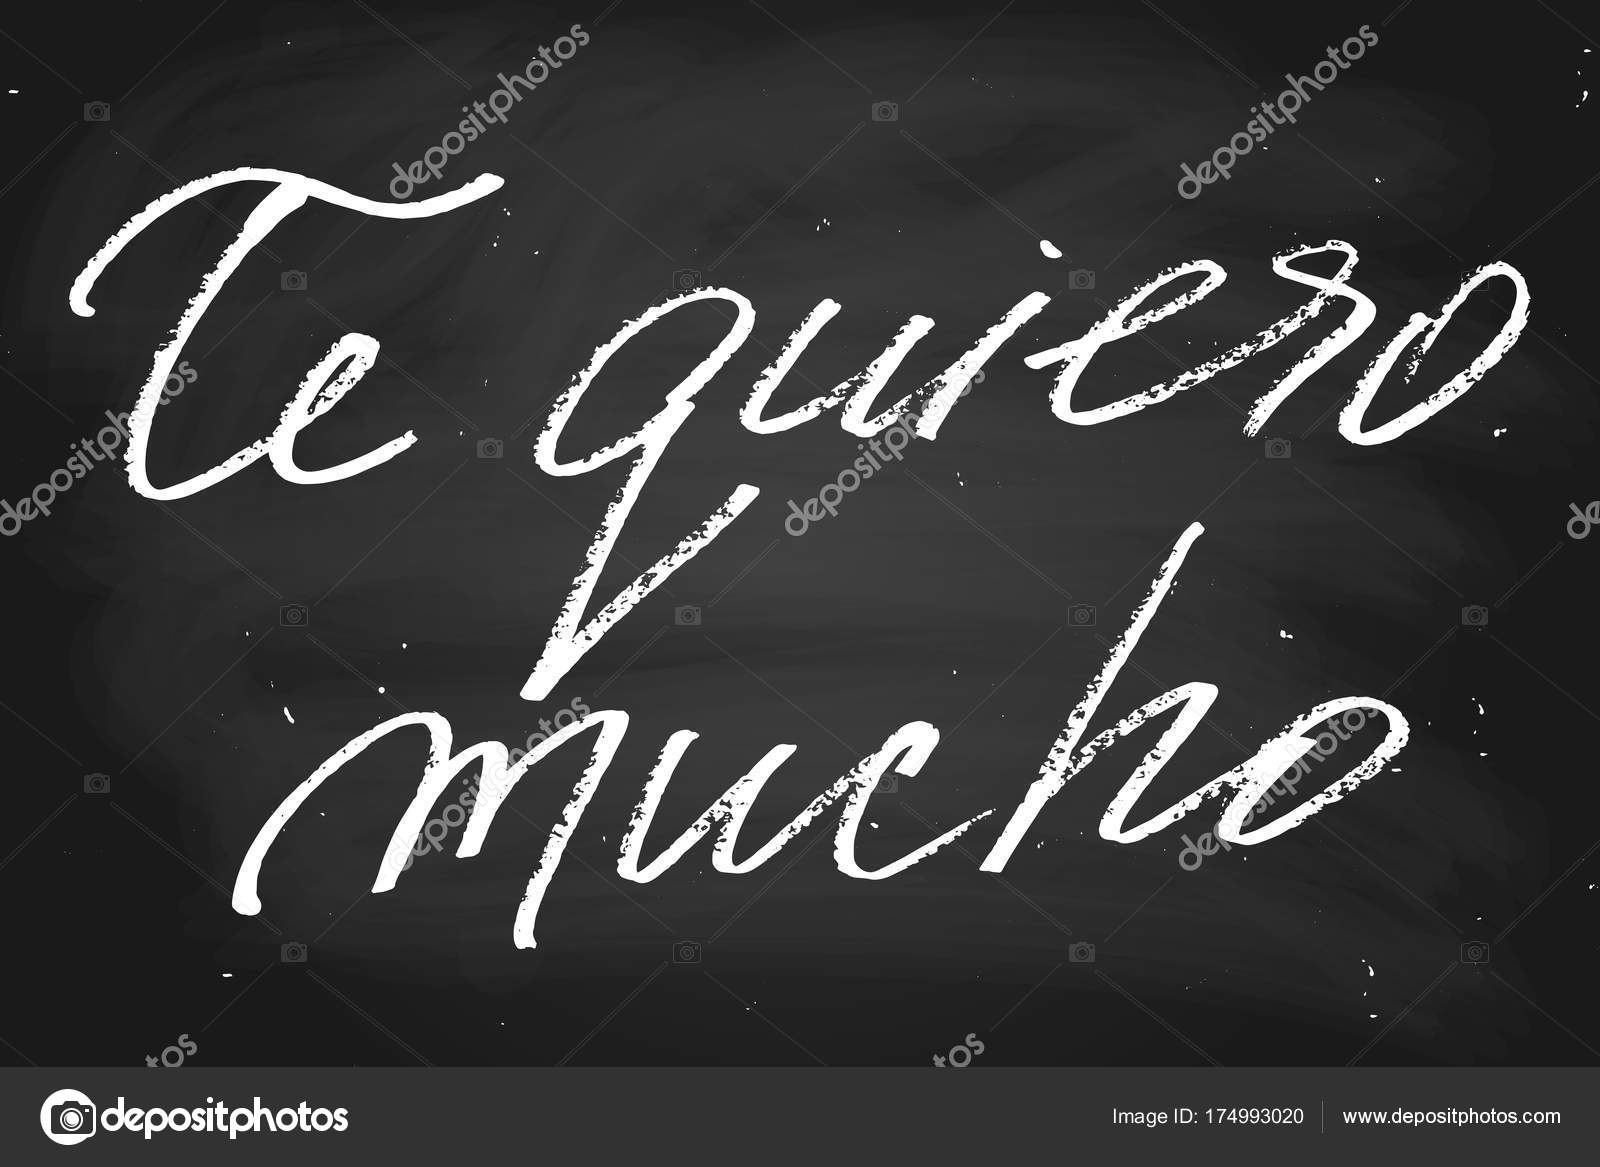 te quiero mucho i love you i want you very much in spanish h